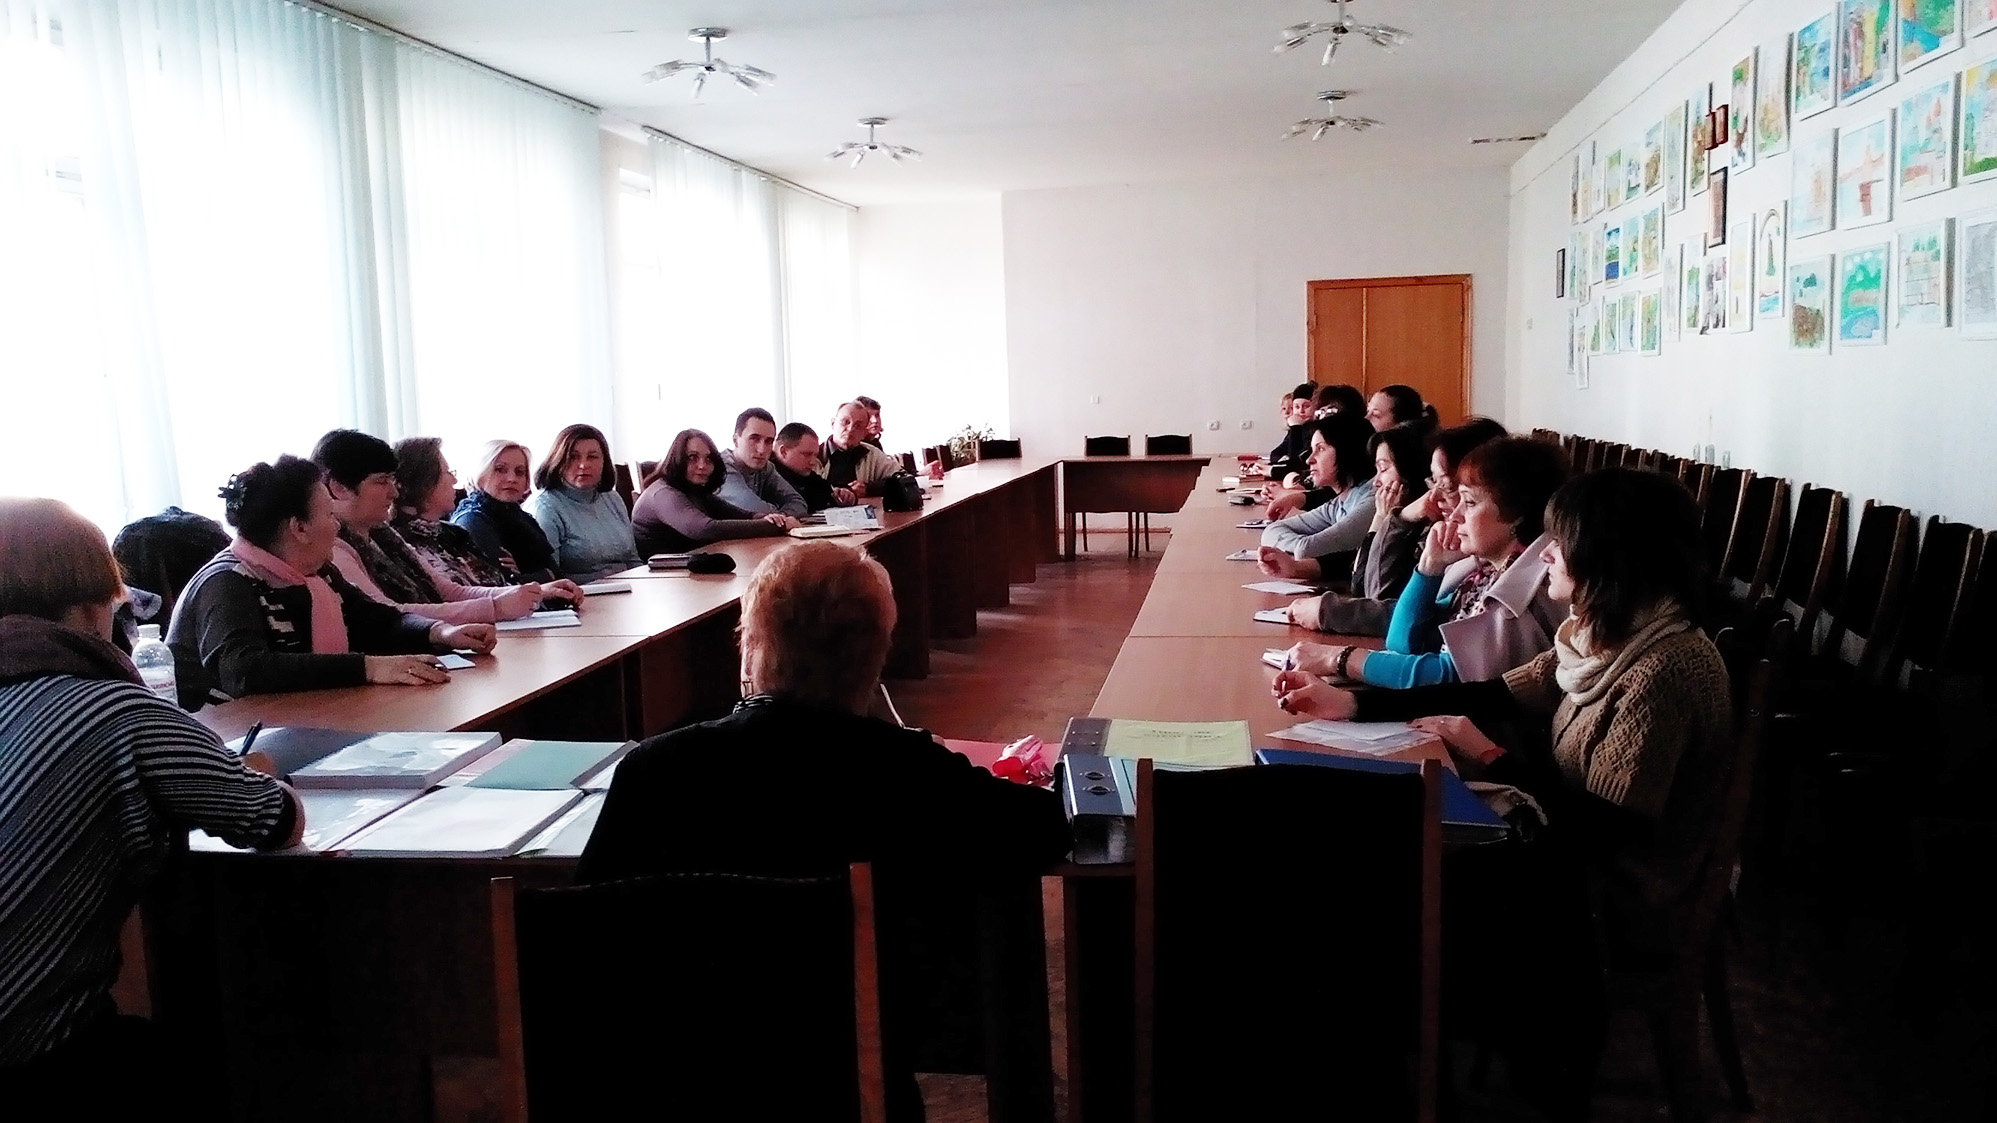 20 teachers attended the workshop in Kyiv